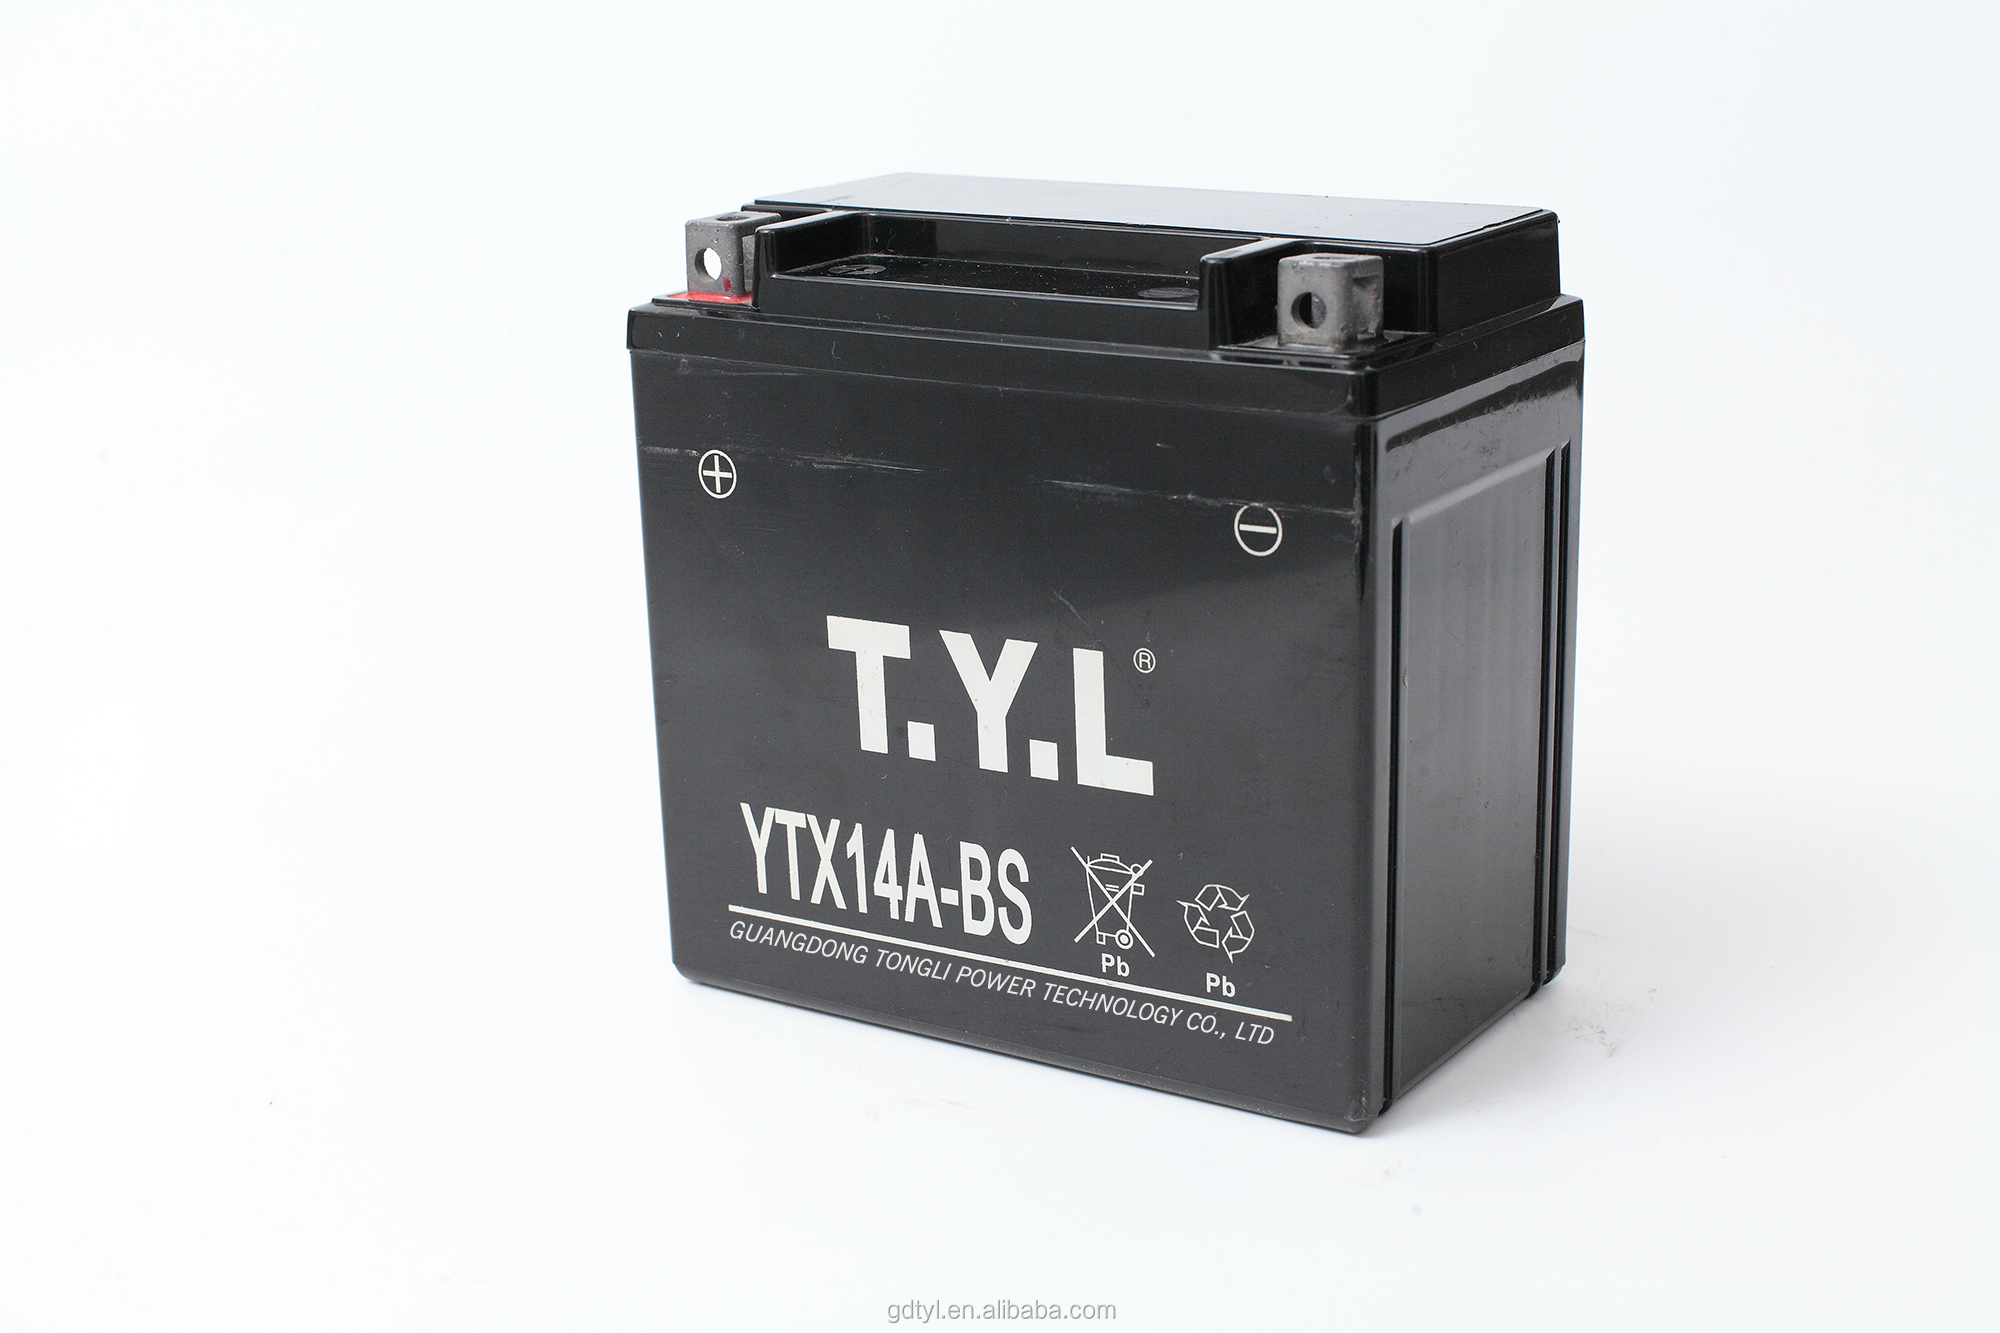 Hot selling mf motorcycle battery 12v 14ah with best quality and low price